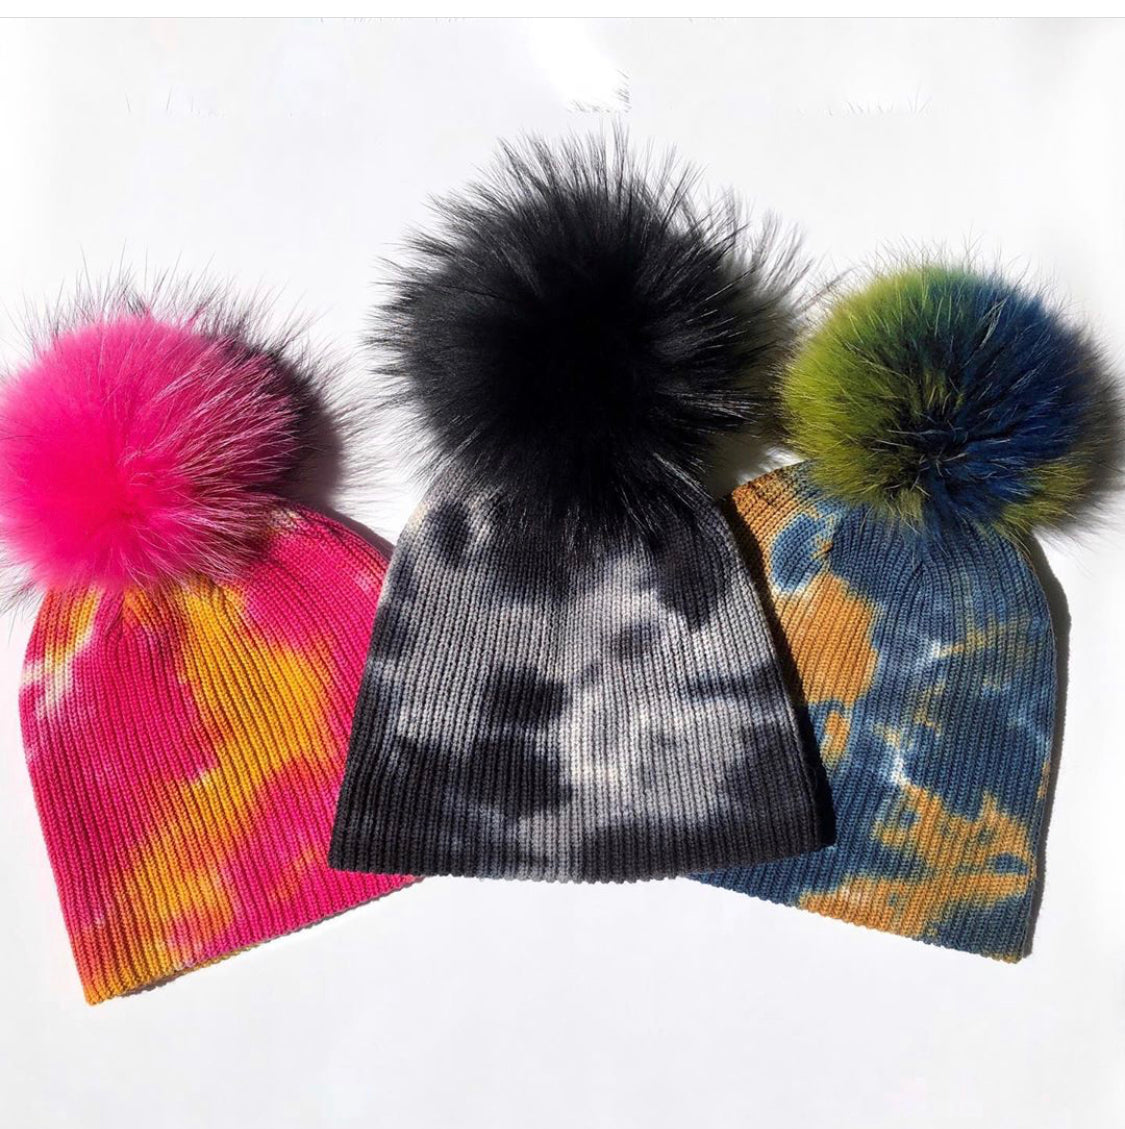 The Tie Dye Fur Pom Hat in Black